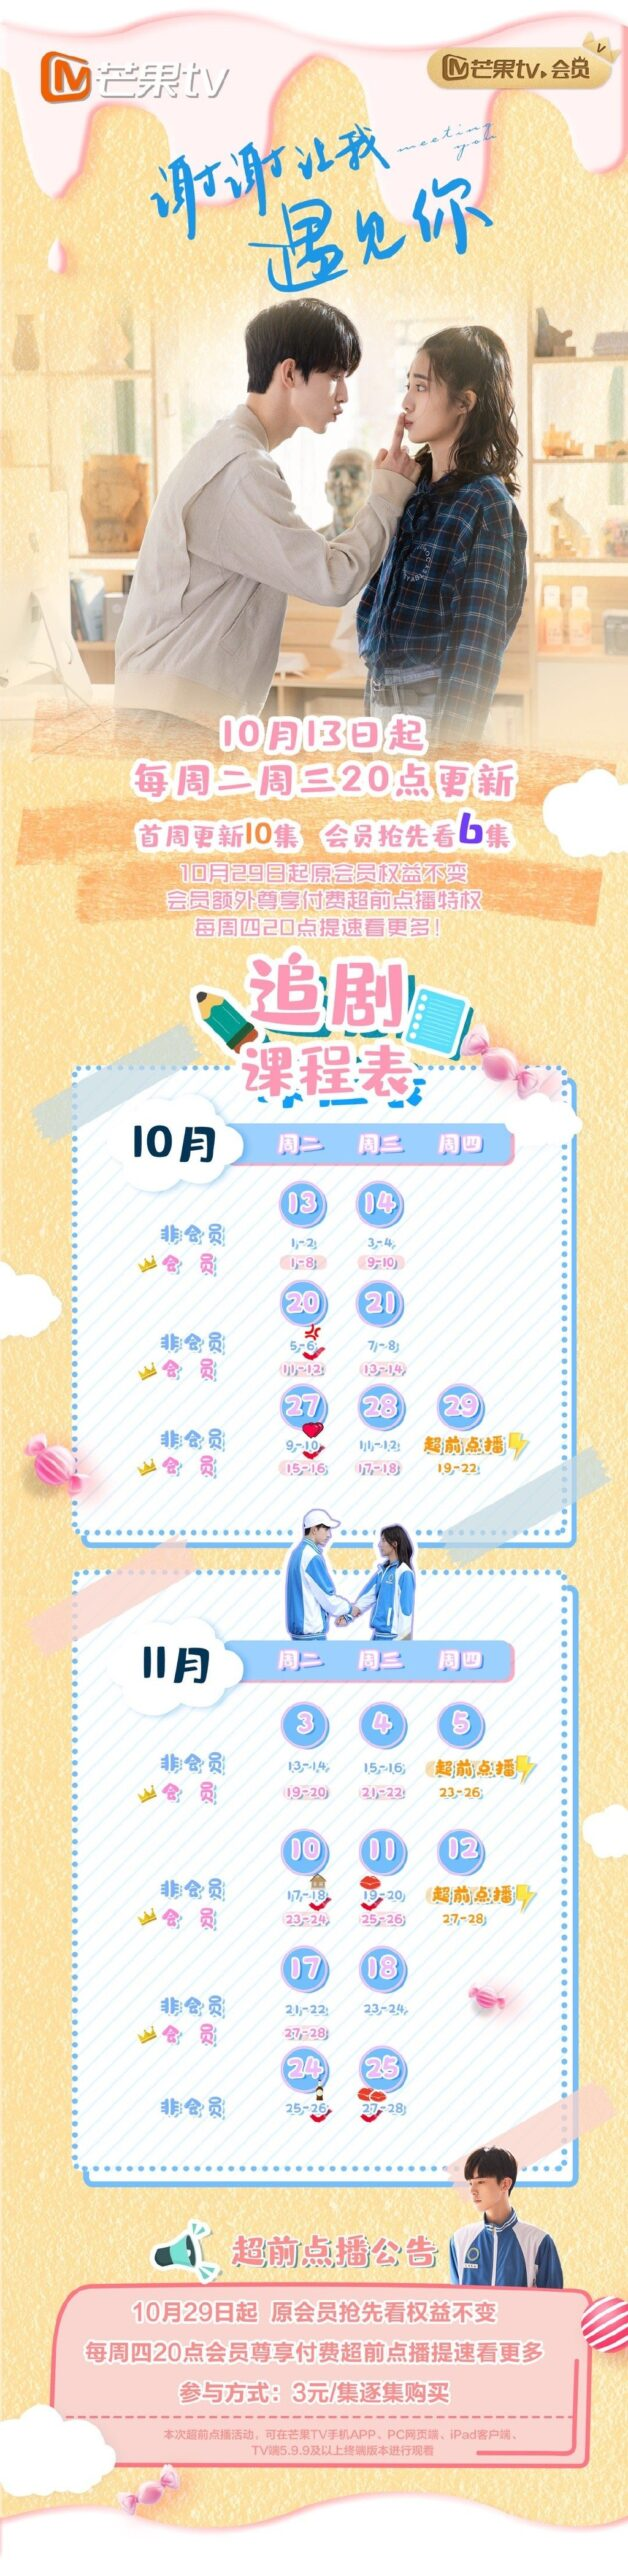 Meeting You Chinese Drama Airing Calendar